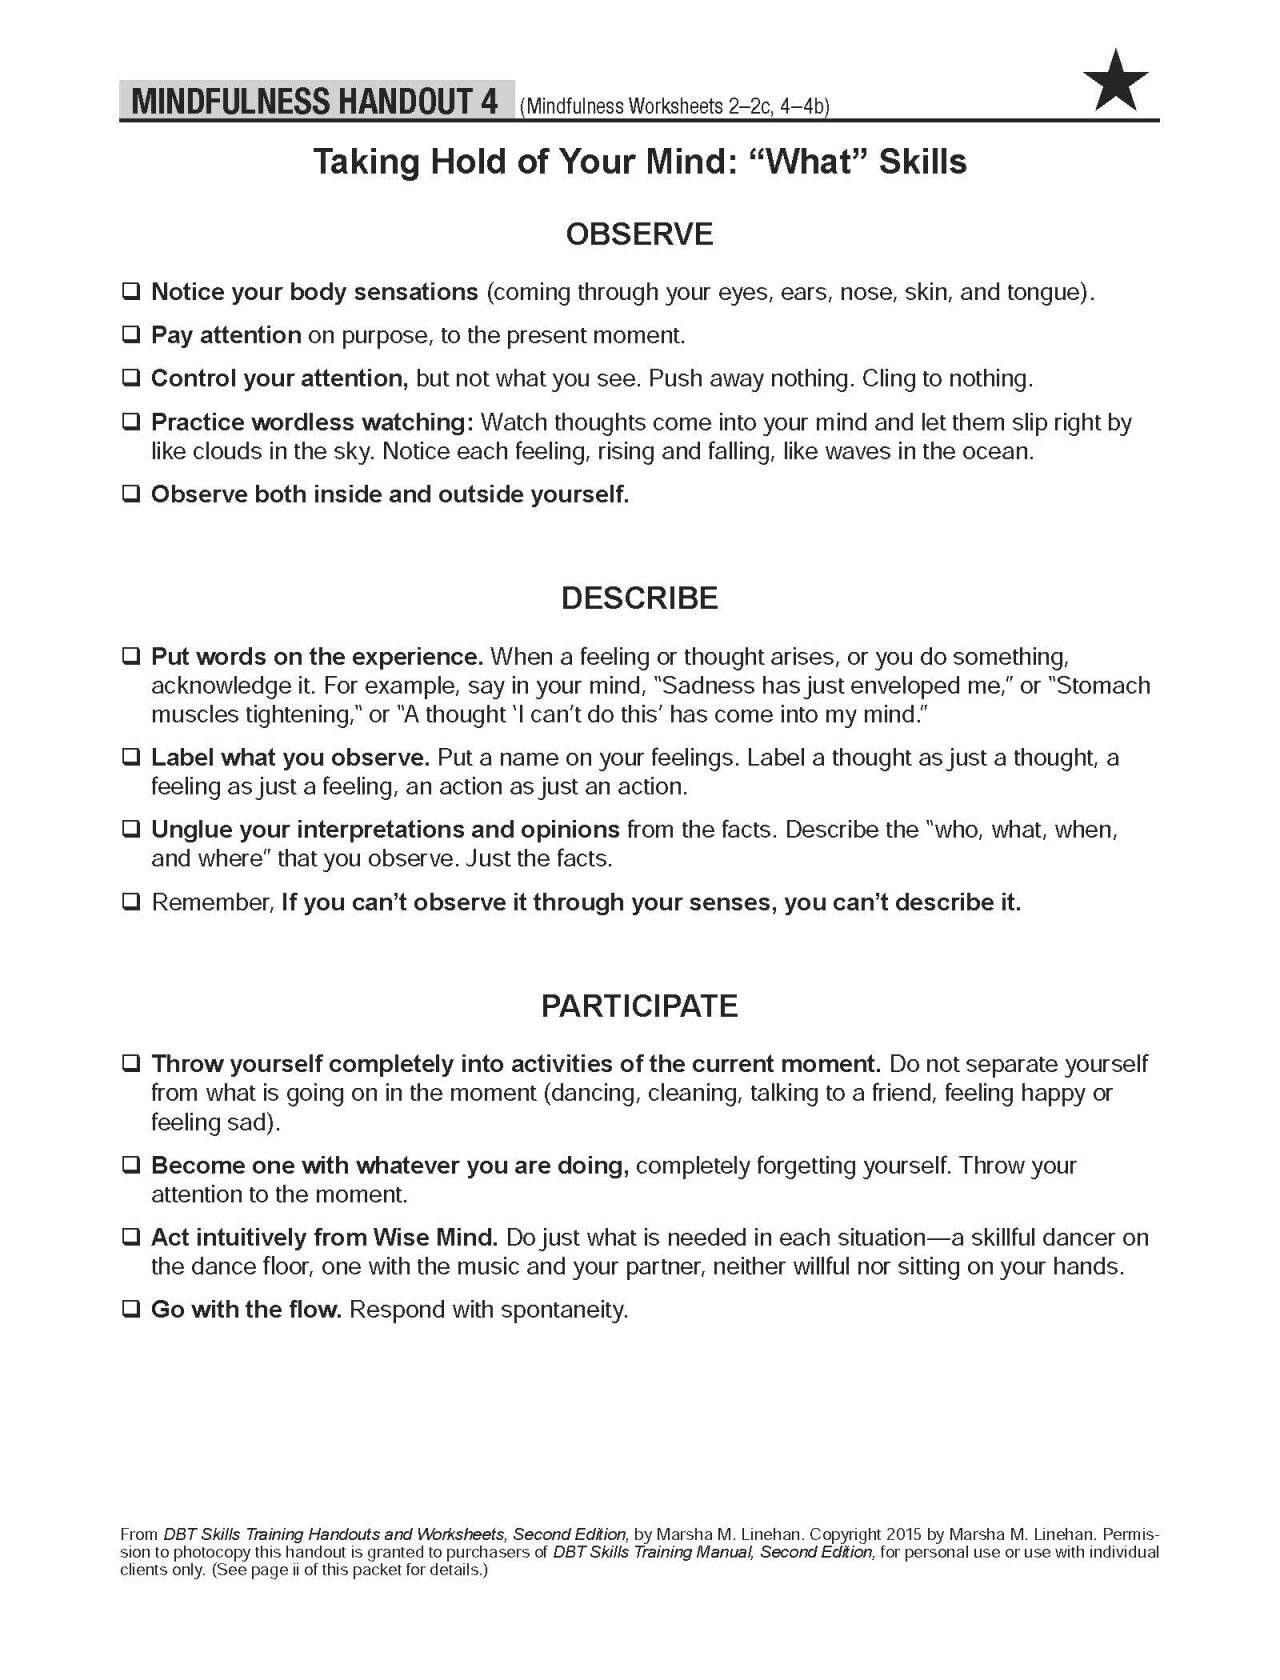 4 Best Dbt Mindfulness Worksheets Images On Best